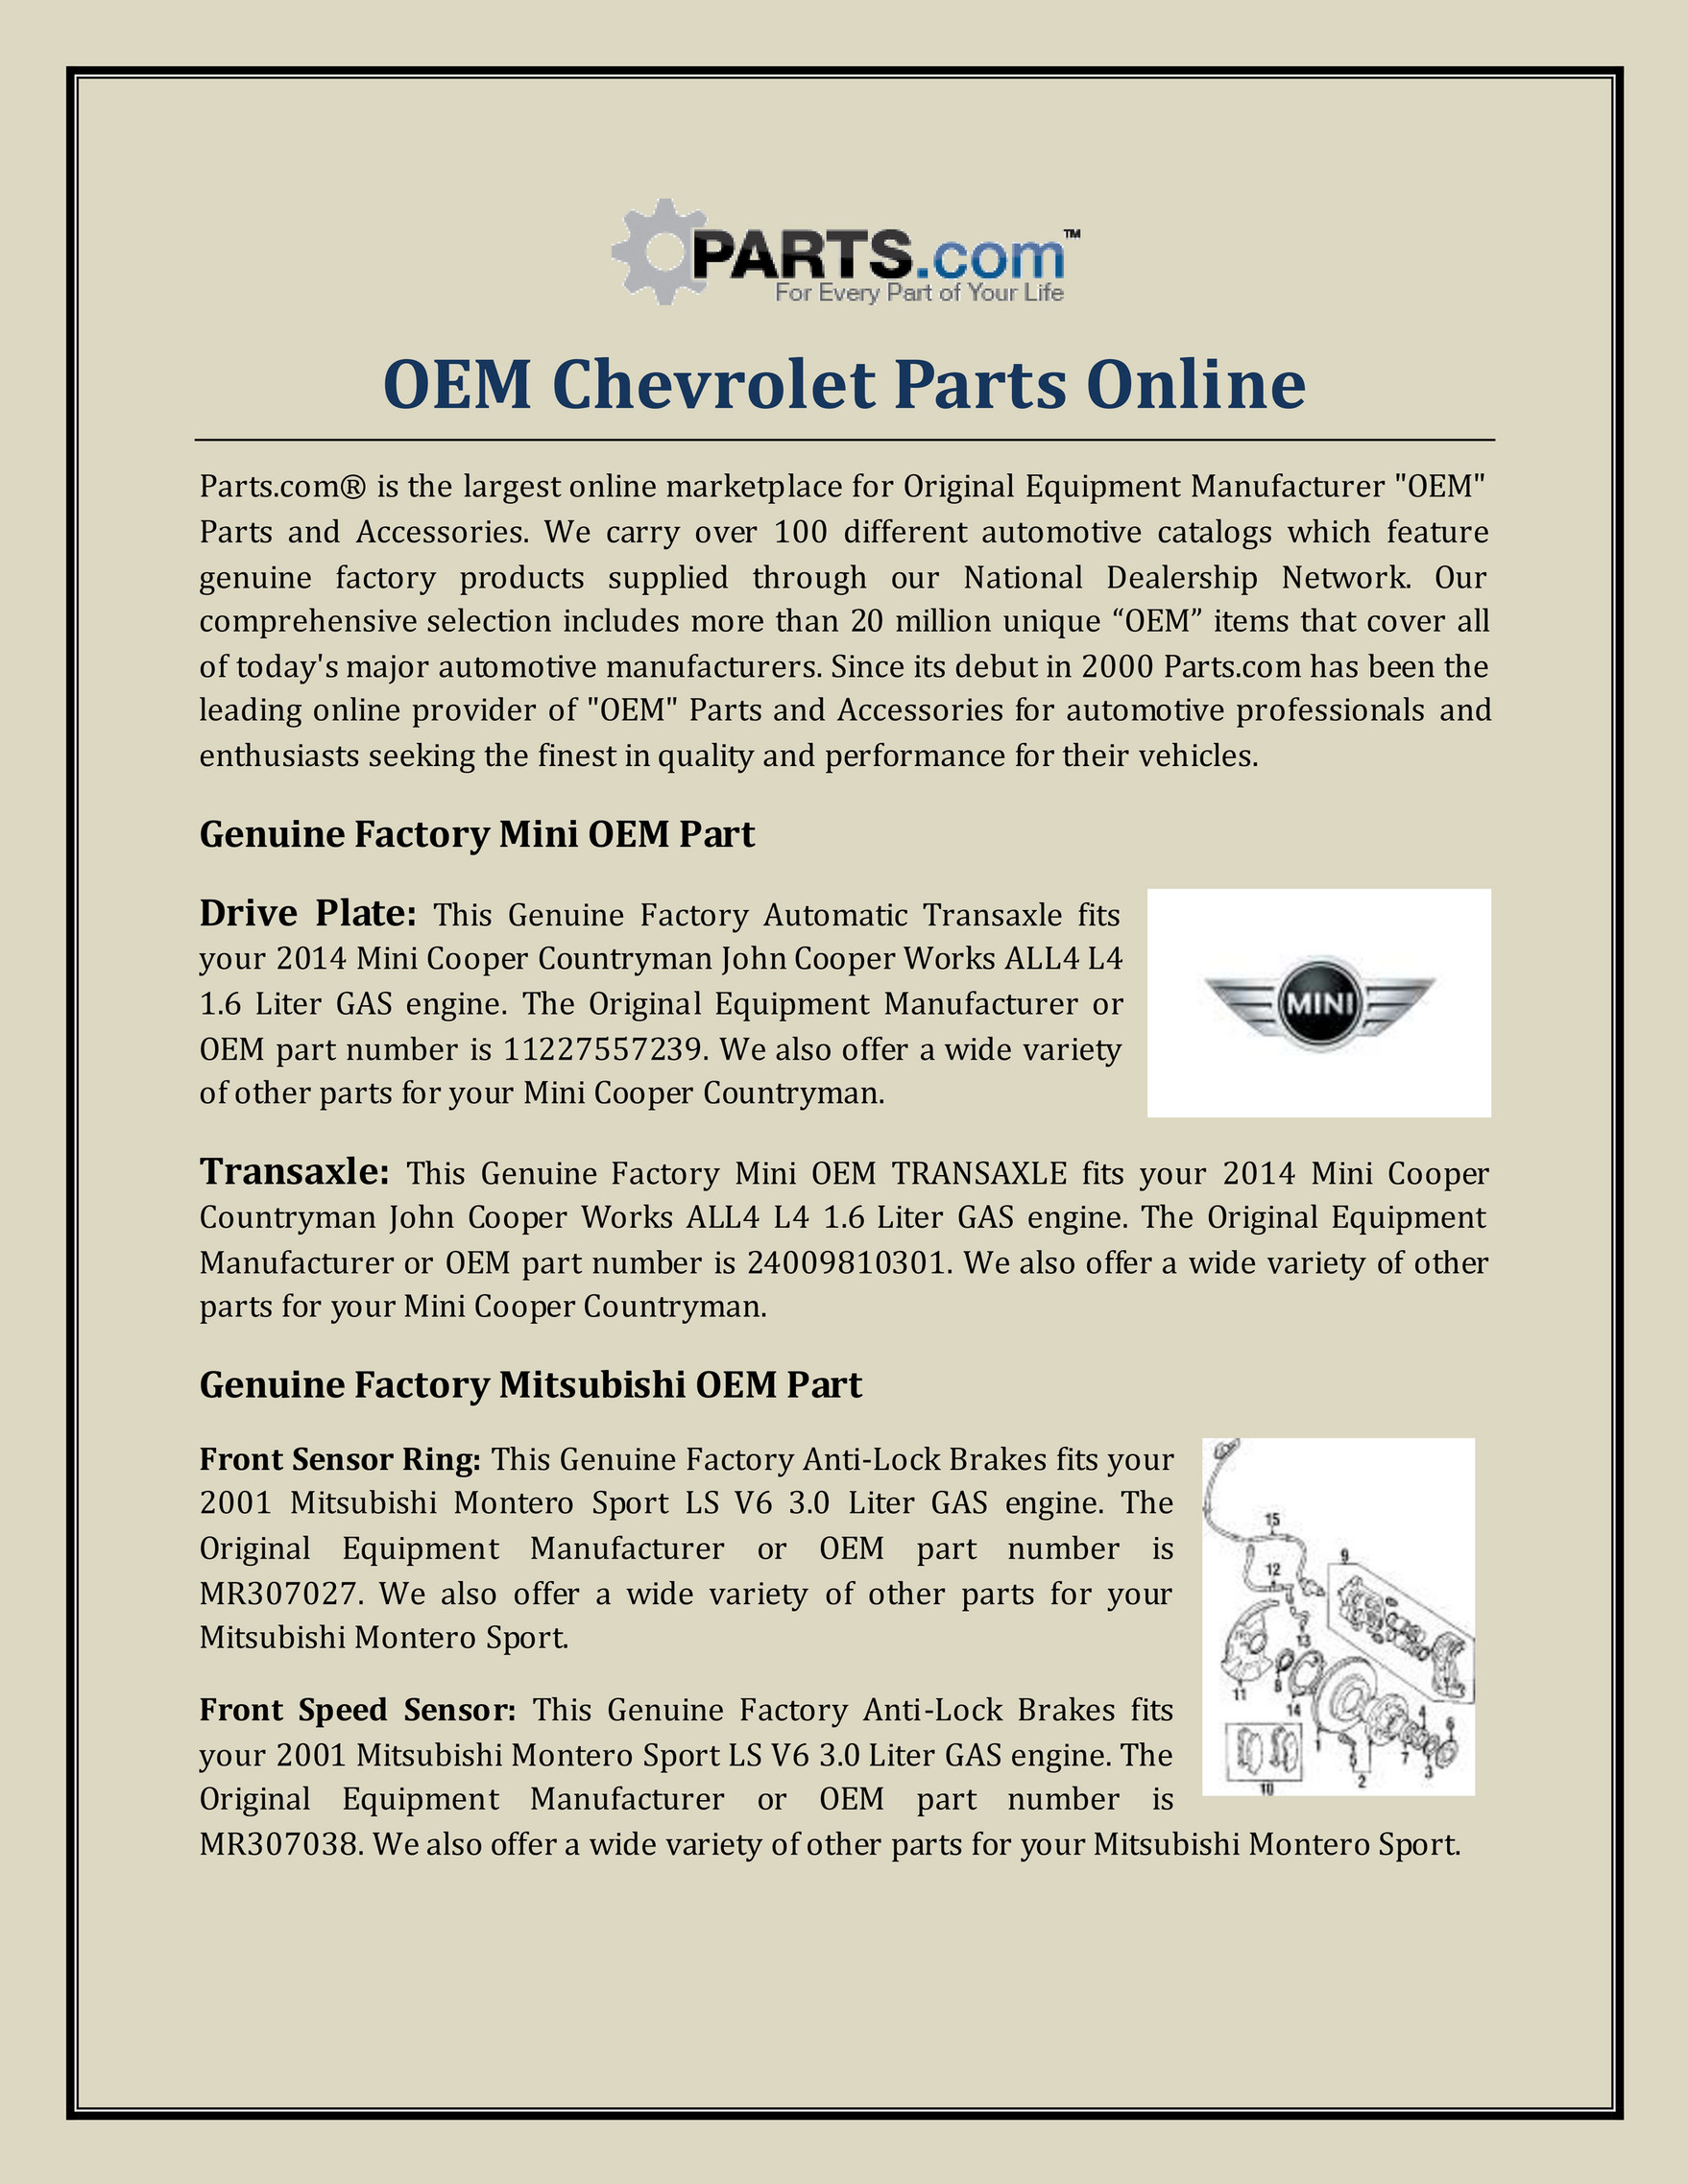 Partspusa Oem Chevrolet Parts Online Page 1 Created With Publitas Com